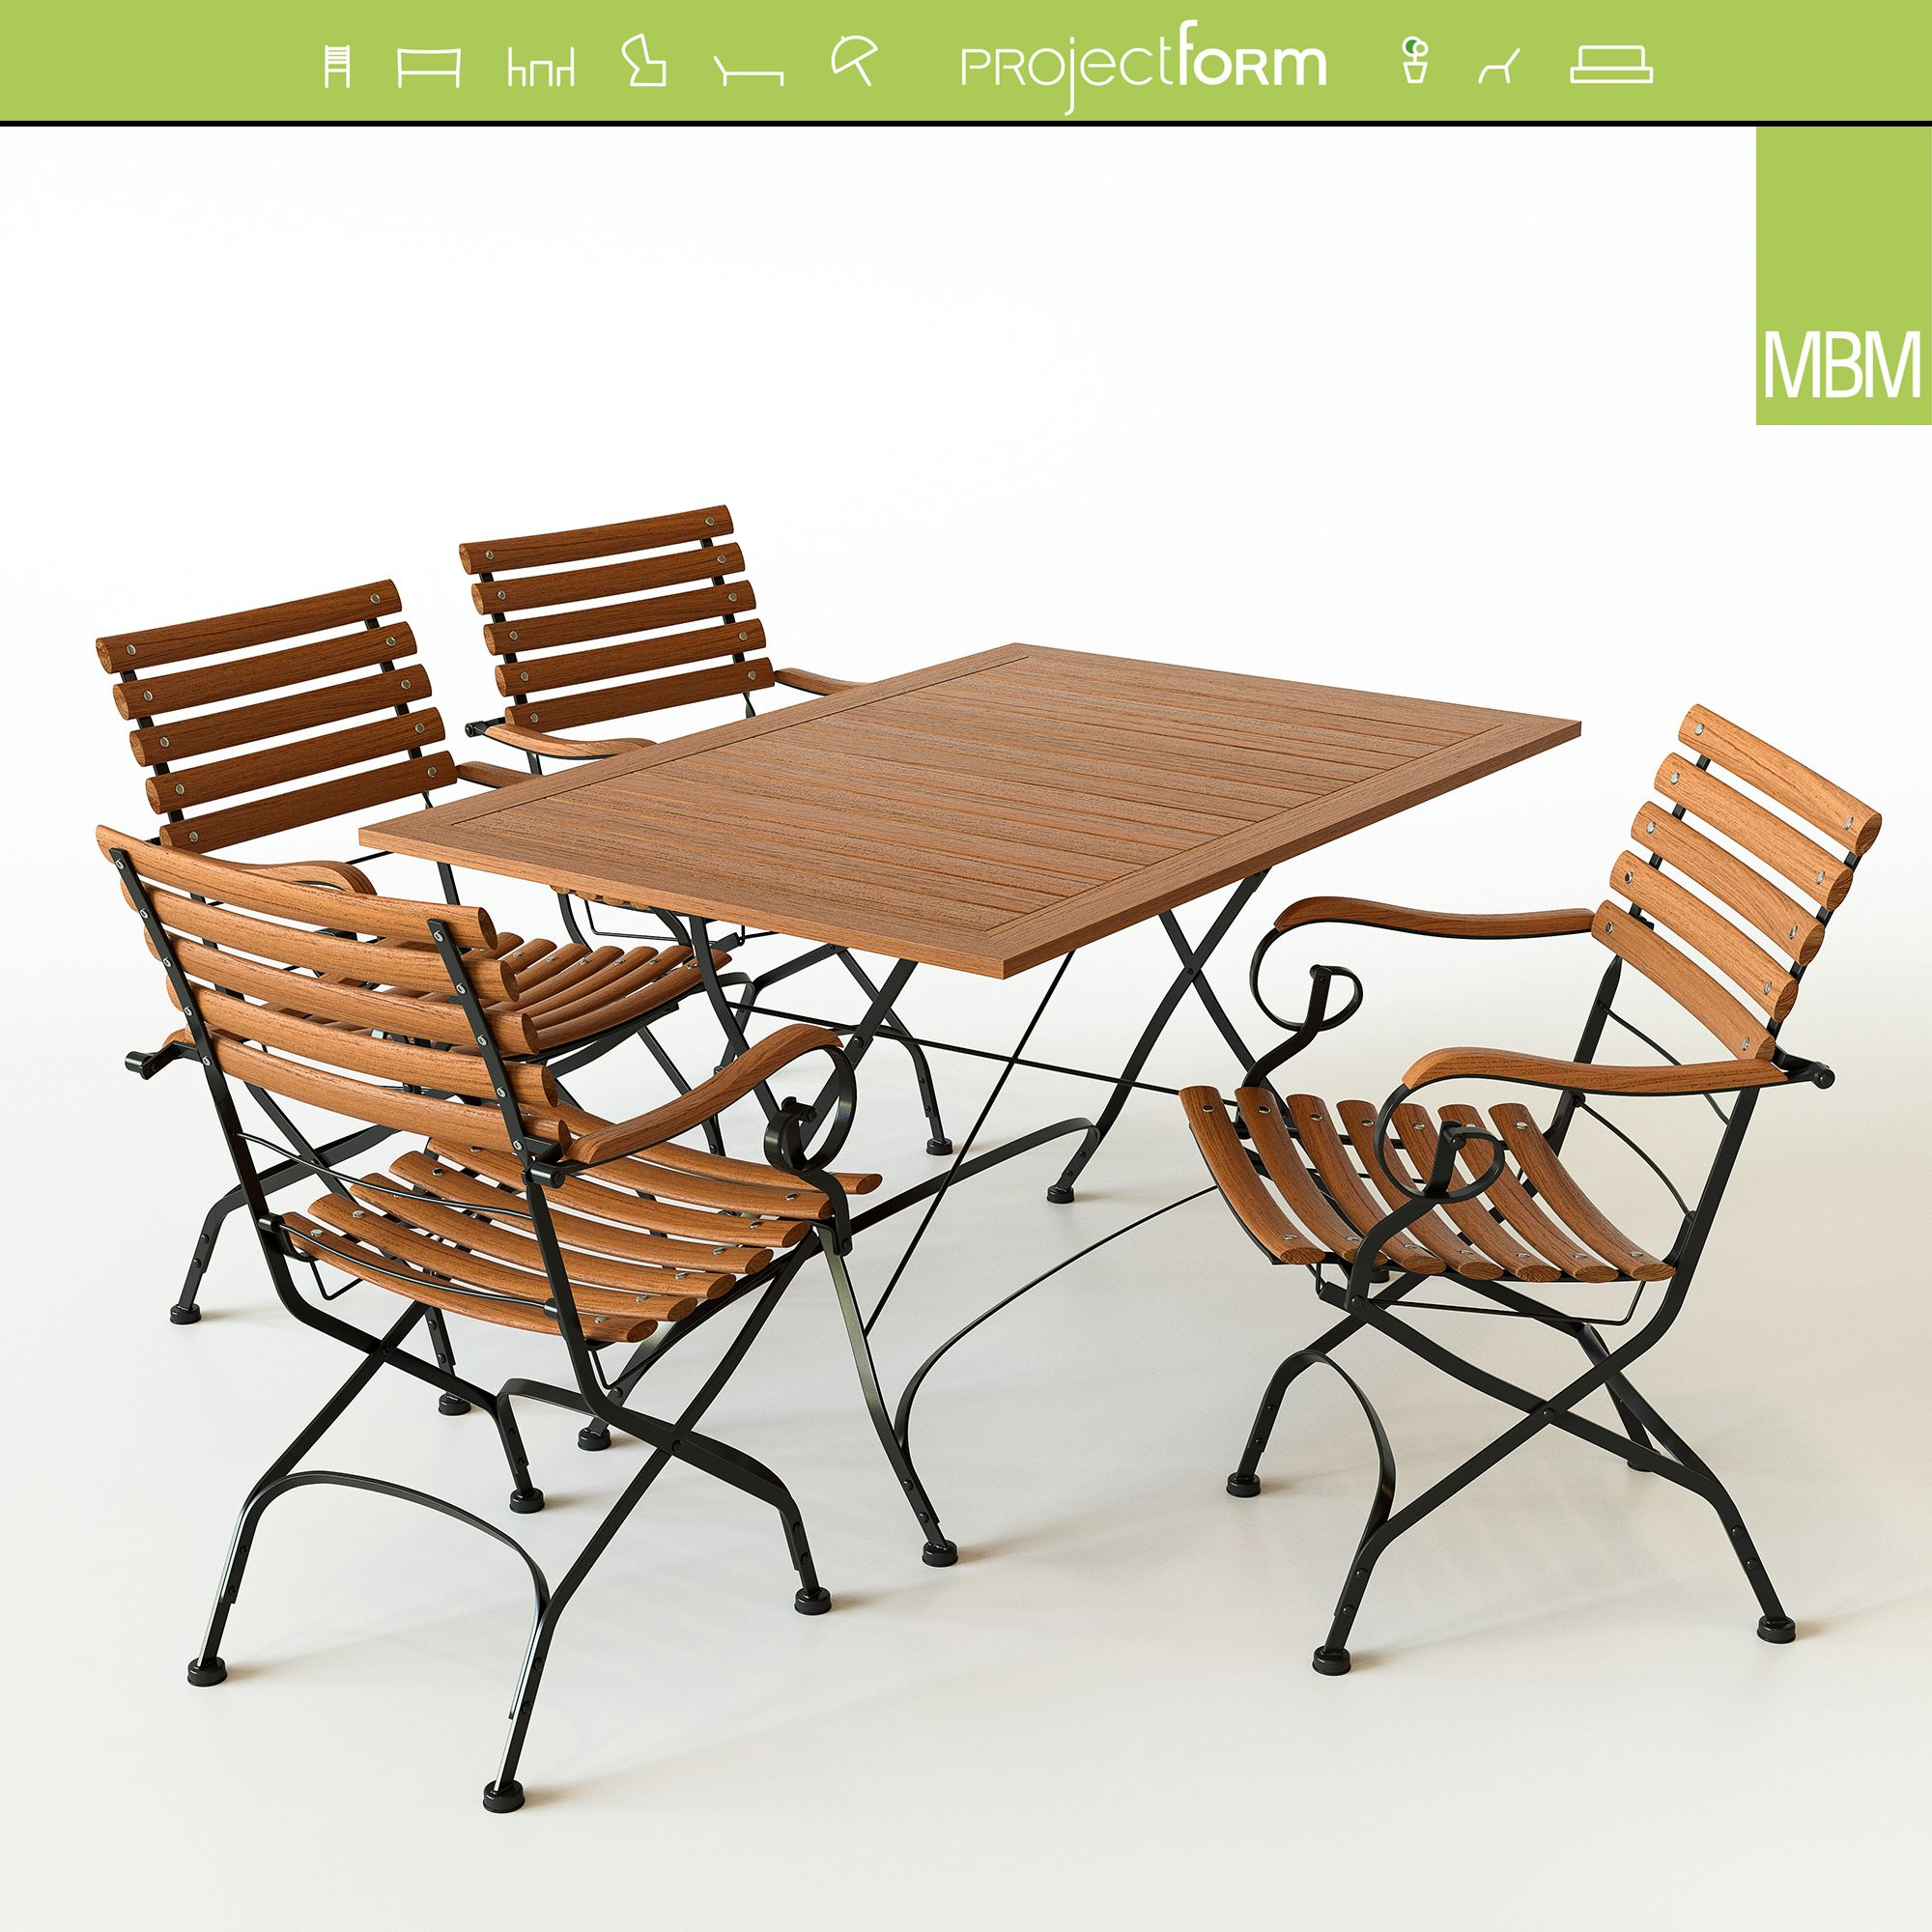 Brazil Table Chair By Mbm Available Www 3dsky Org Table And